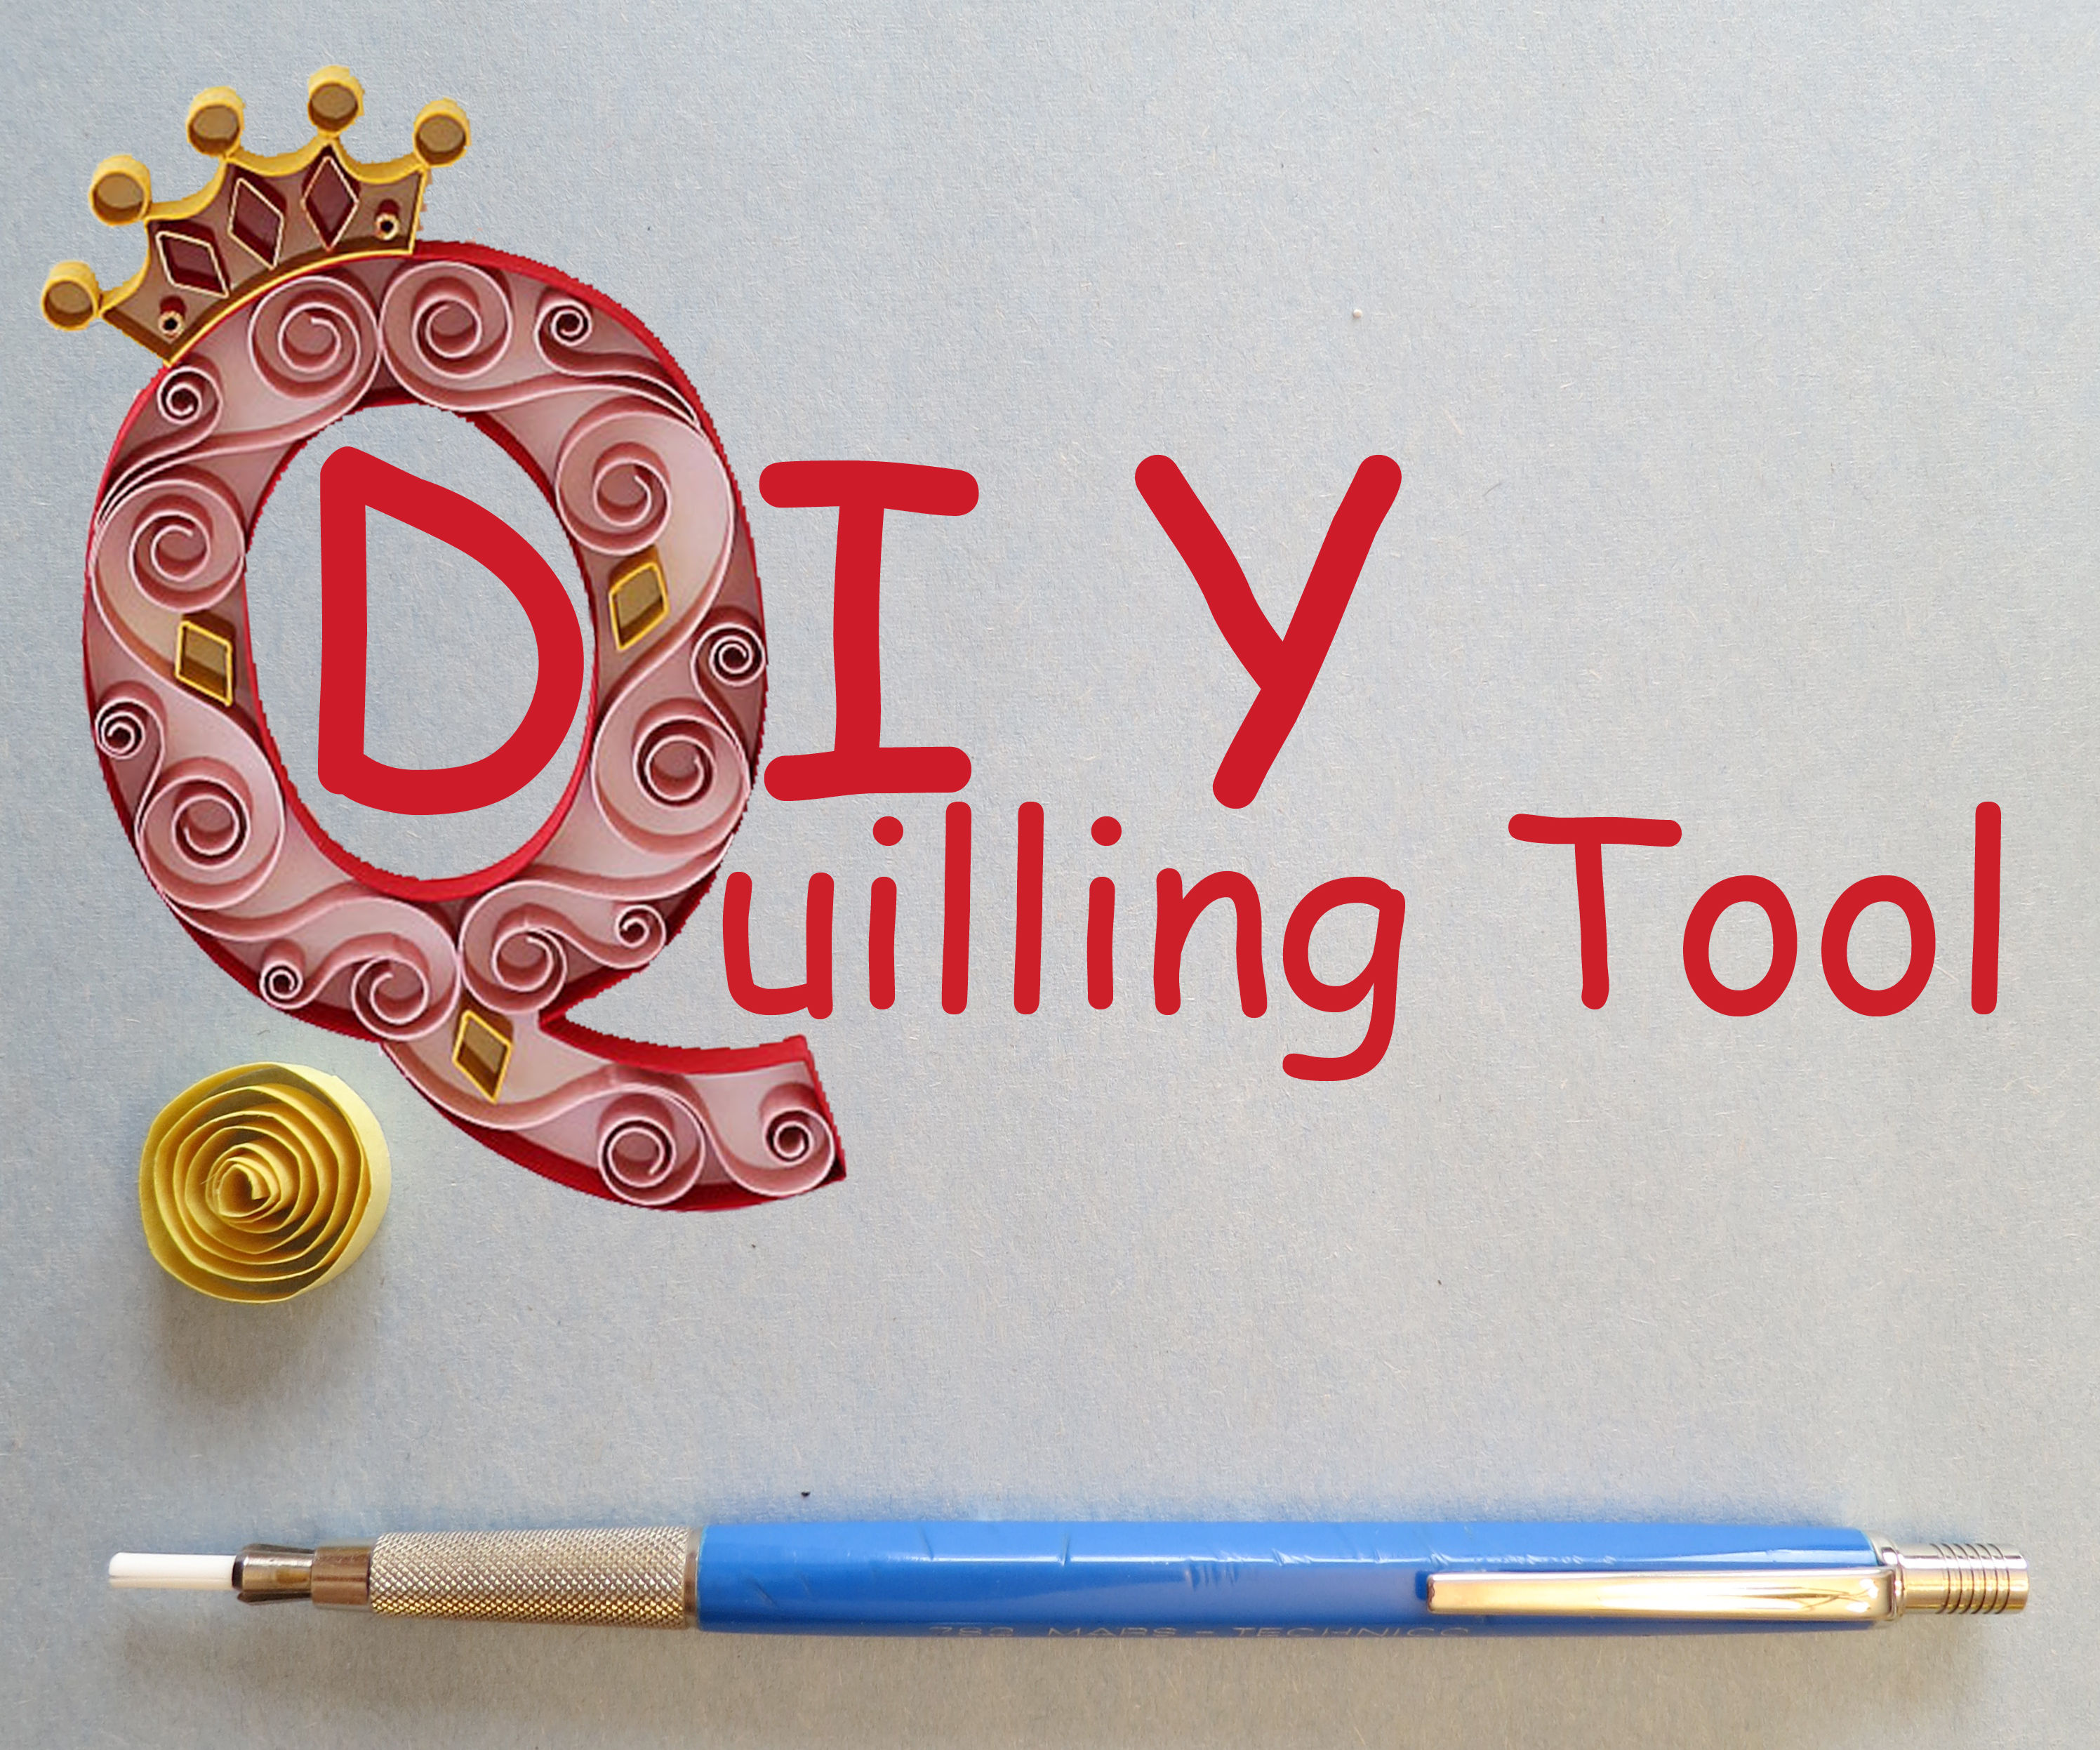 DIY Quilling Tool From Junk Drawer Finds!